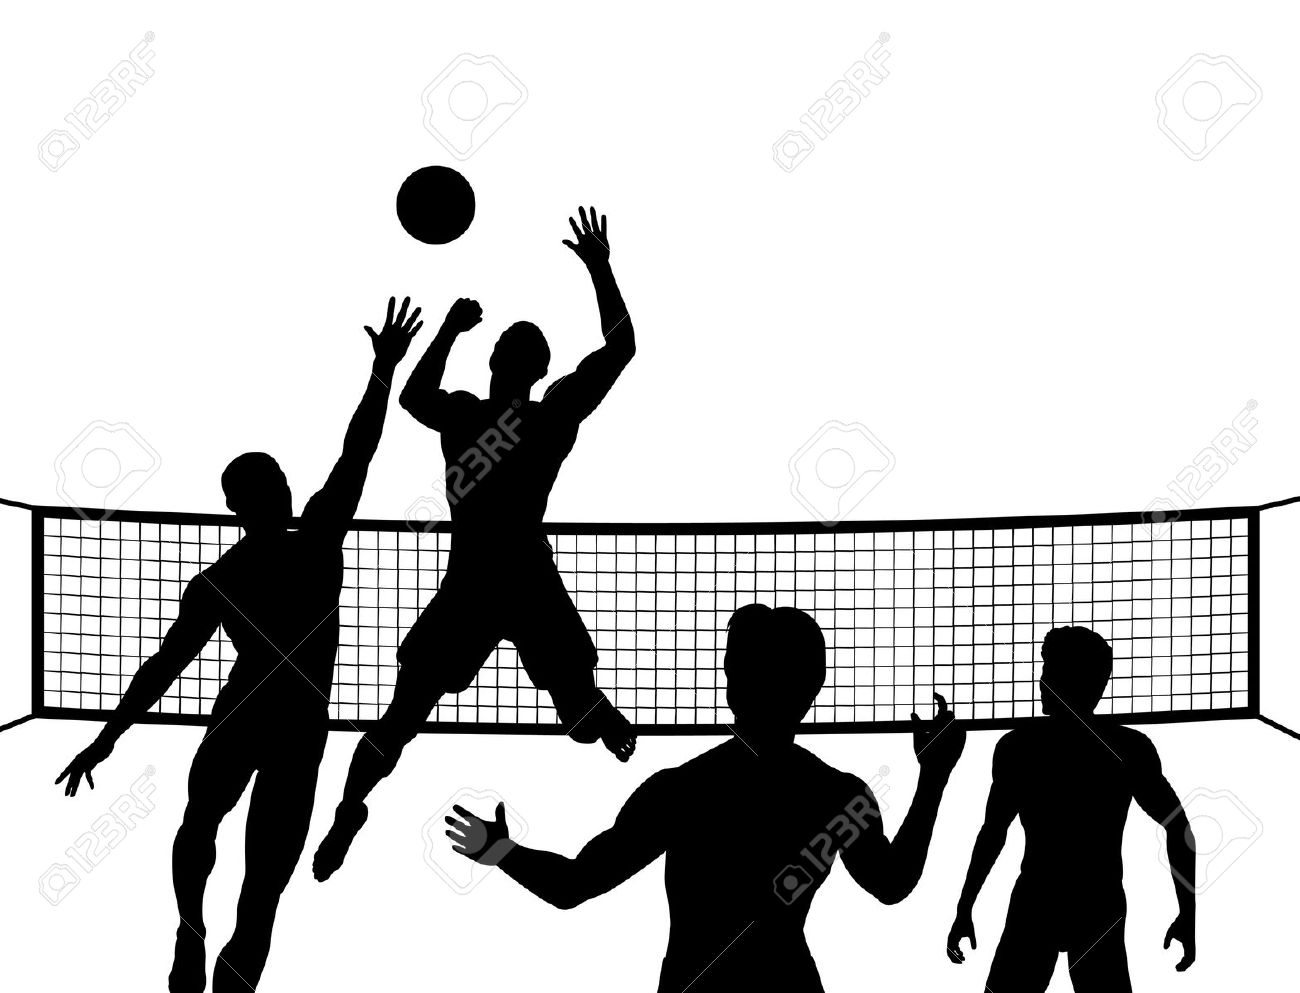 volleyball player silhouette clipart at getdrawings com free for rh getdrawings com volleyball player silhouette clipart volleyball player clipart black and white